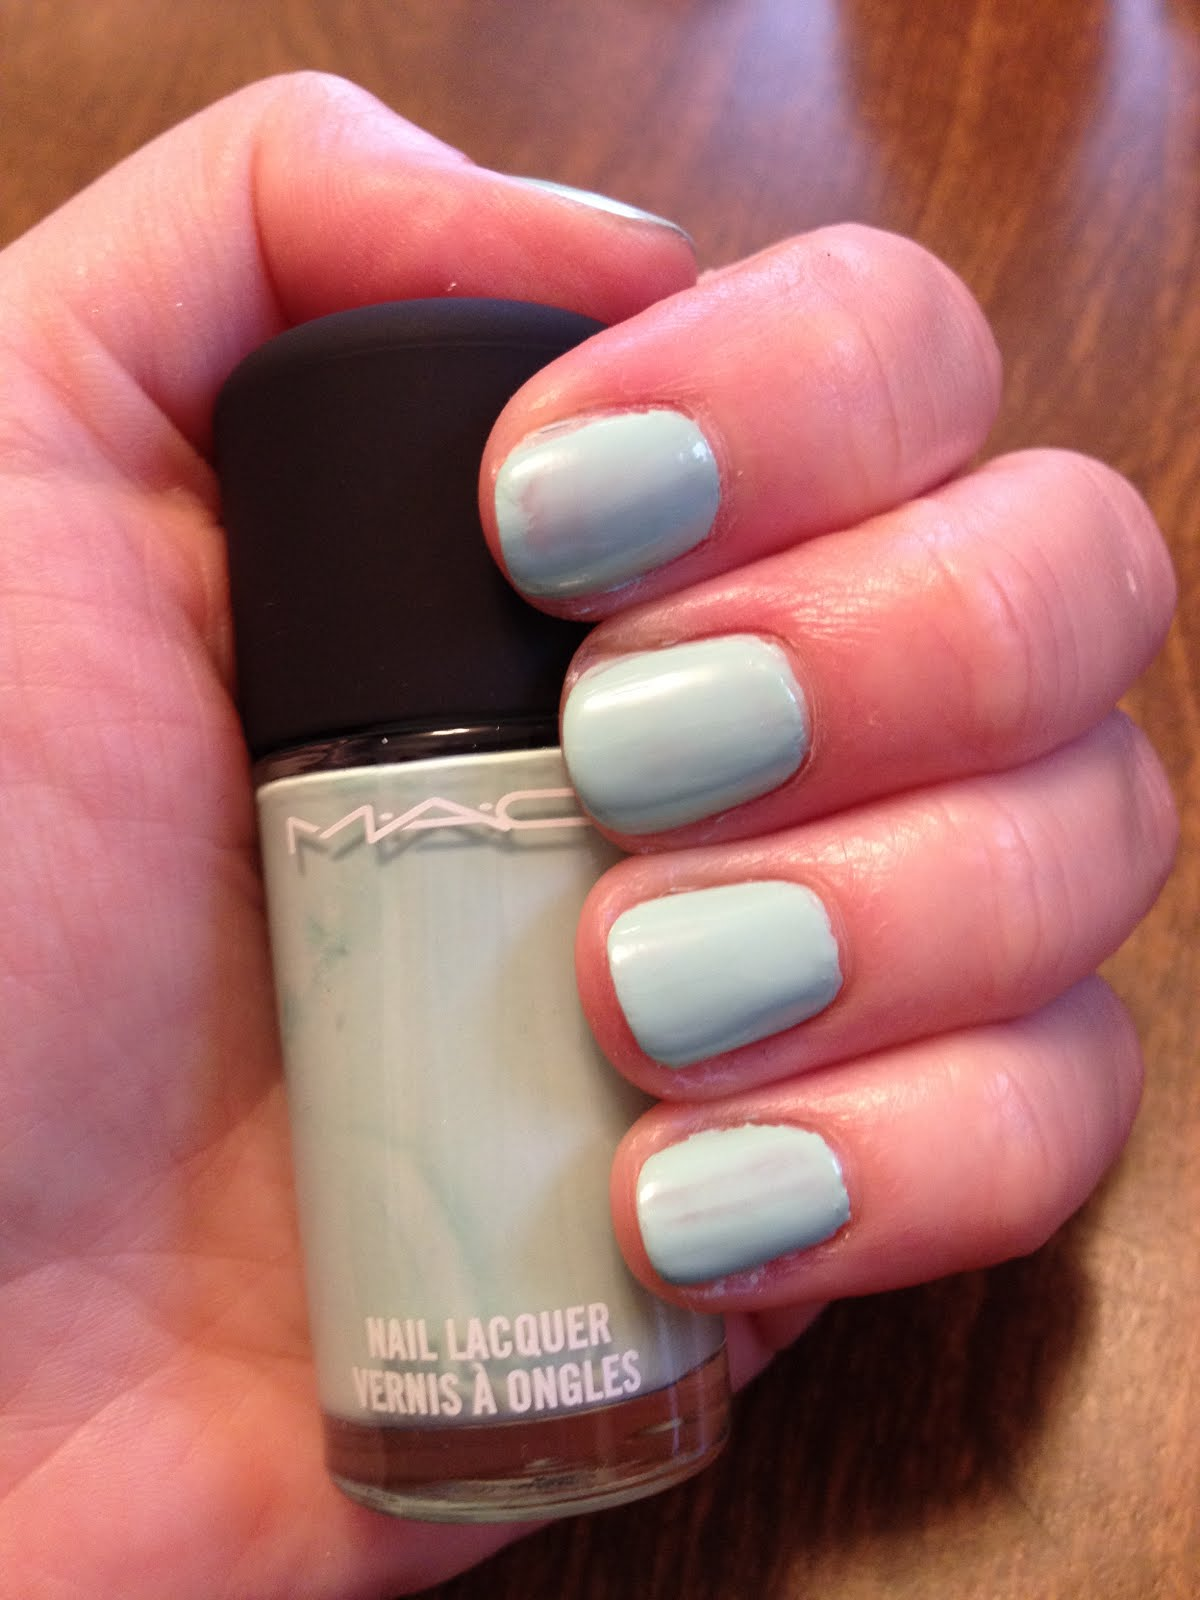 The Beauty of Life: M.A.C Glamour Daze Nail Lacquer Swatches